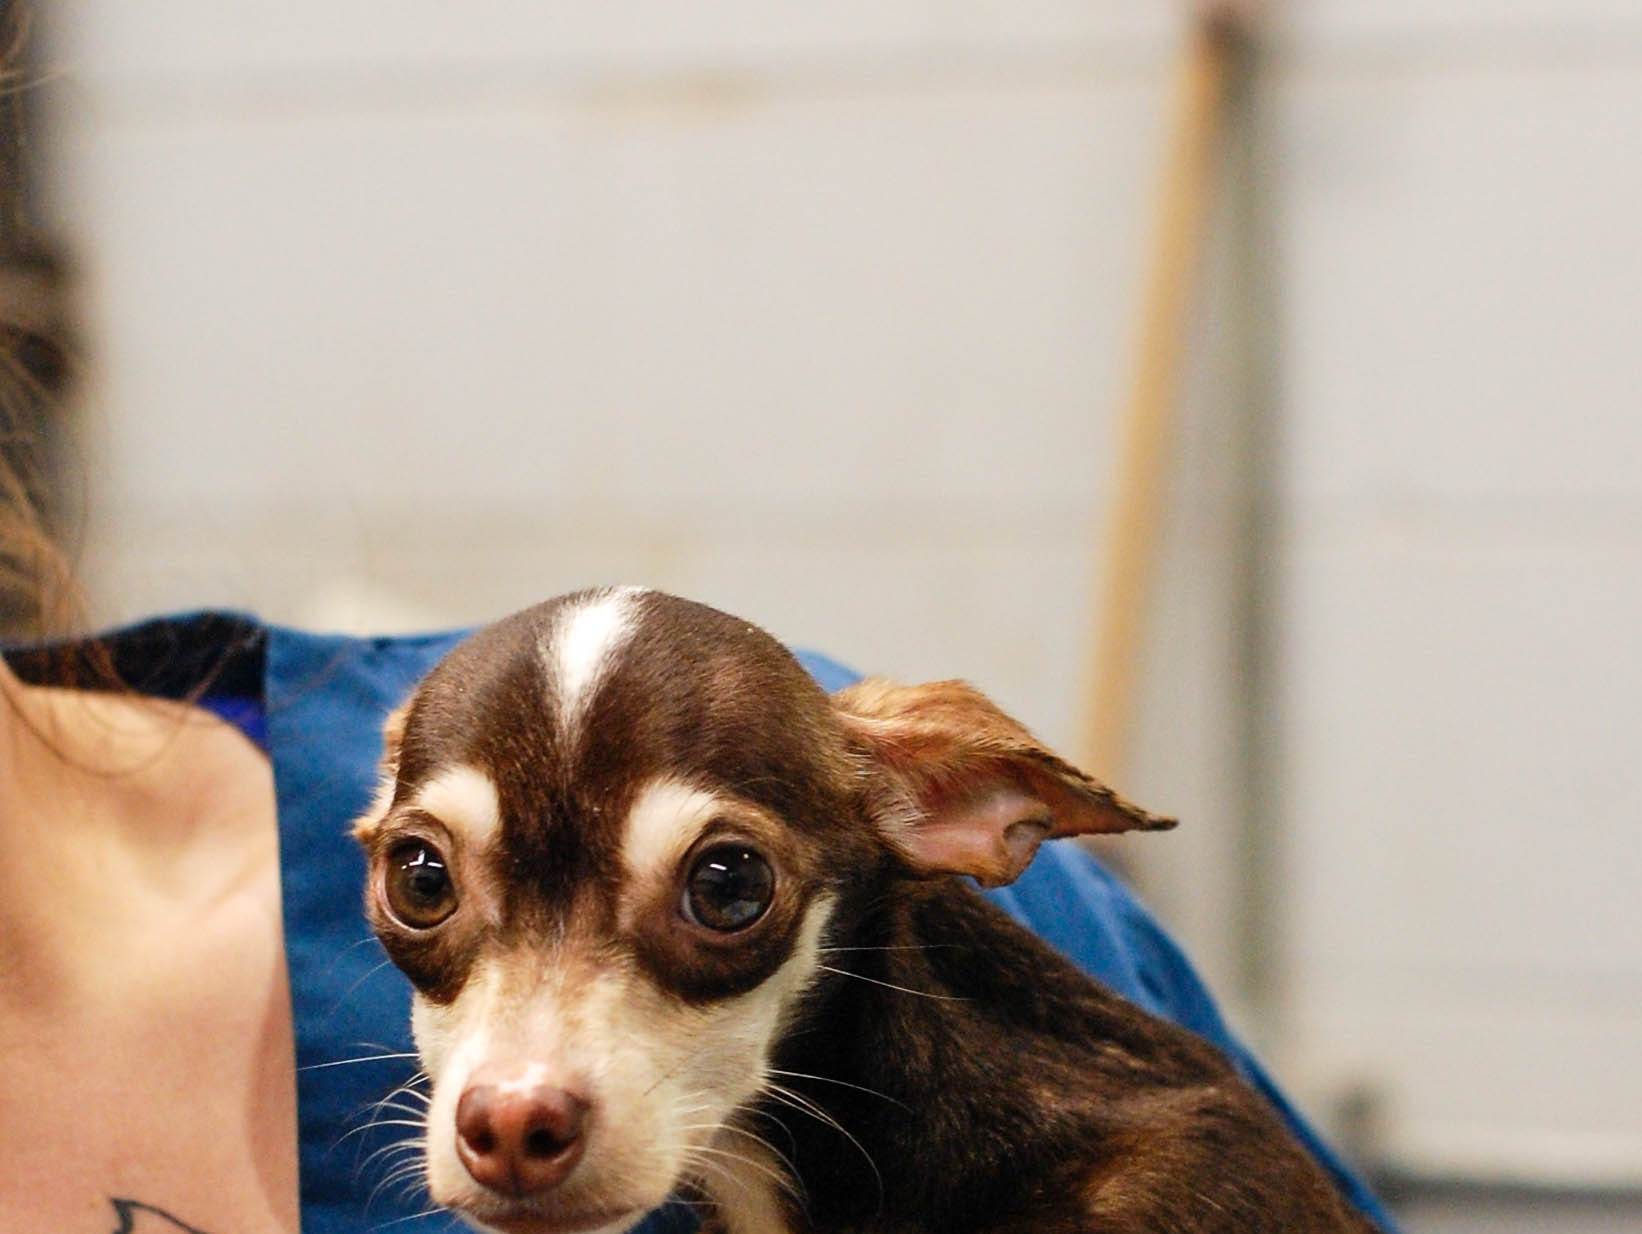 Oscar the dog was found in a Des Moines dumpster. A passerby rescued him and brought him to the Animal Rescue League of Iowa.